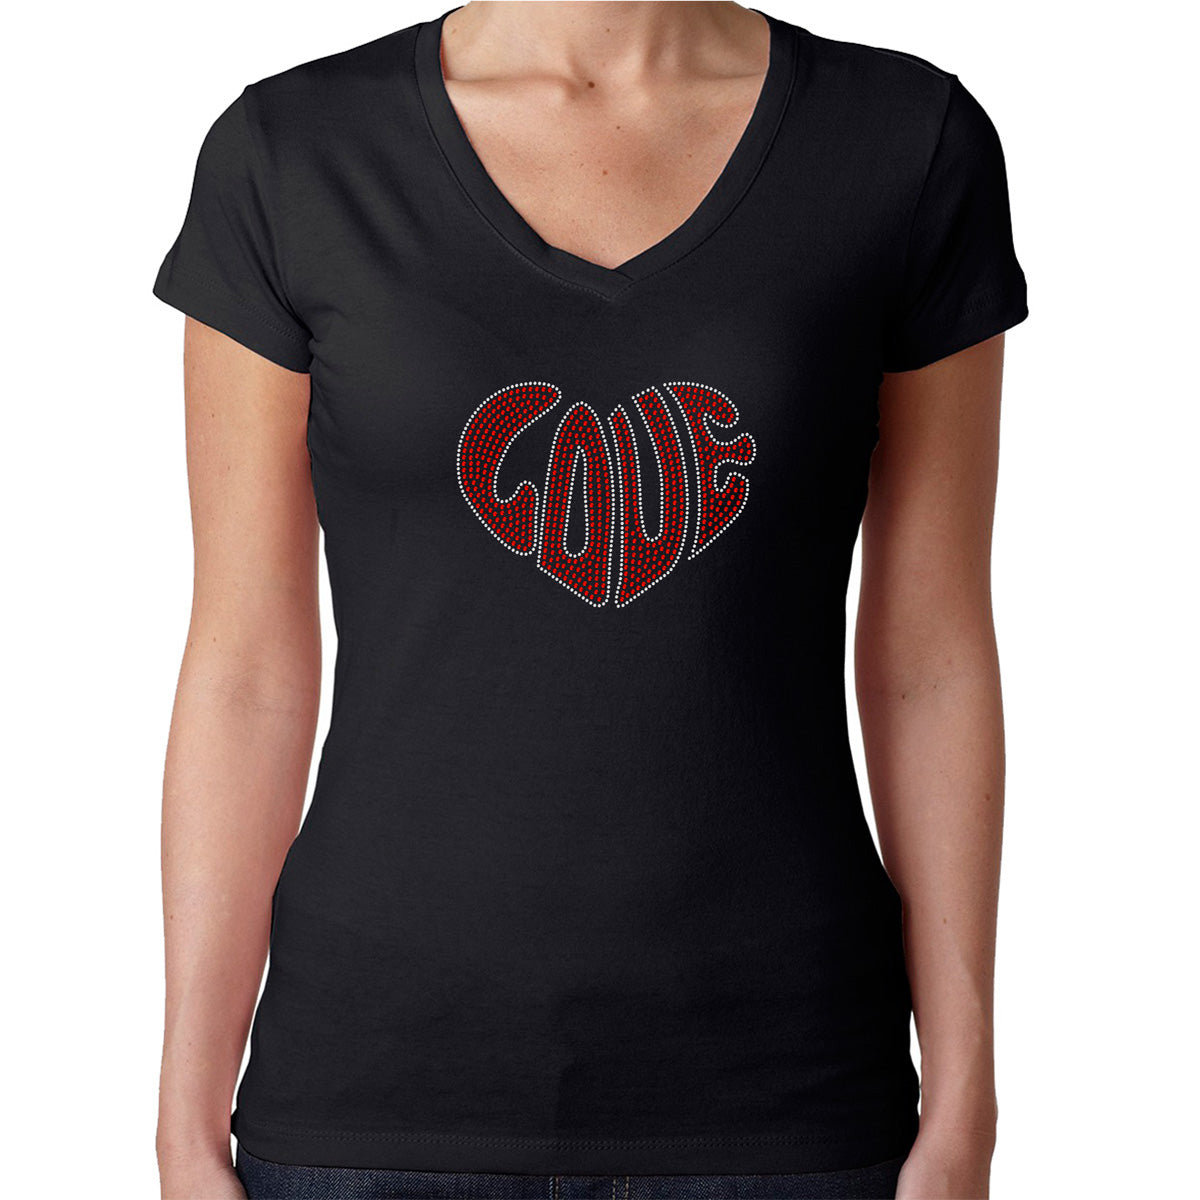 Womens T-Shirt Rhinestone Bling Black Fitted Tee Love Heart Shape Red Sparkle